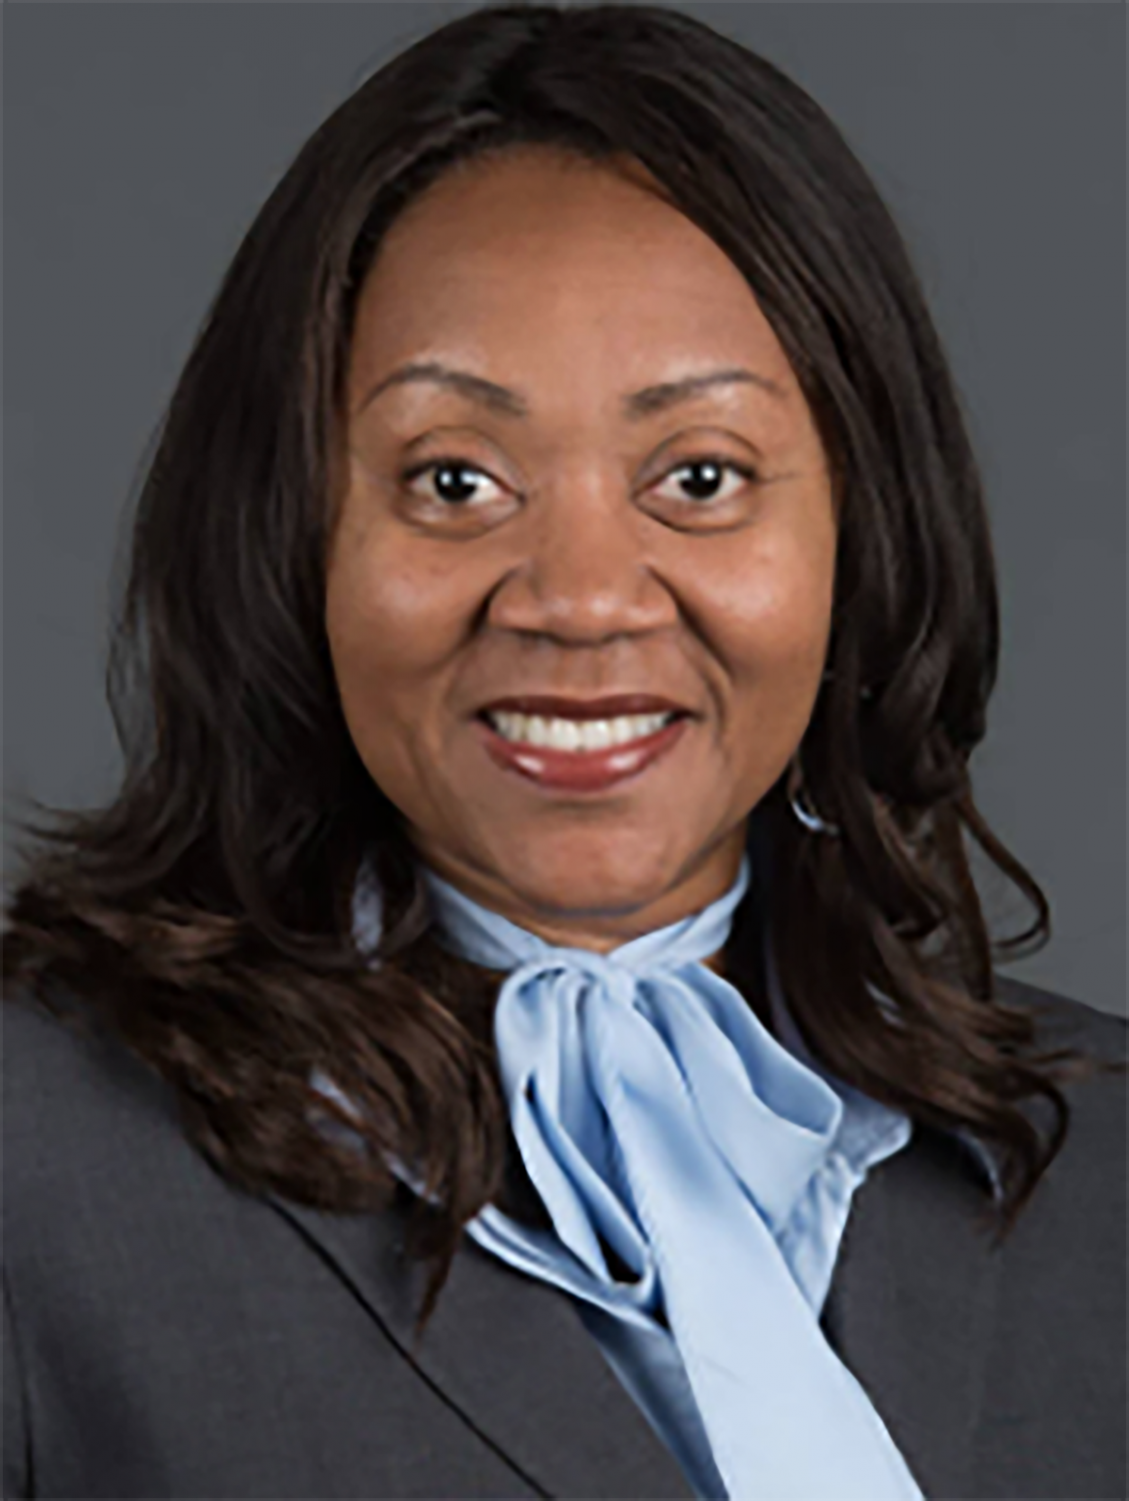 Dr. Johnson will be taking up the vice chancellor position for Diversity and Inclusion at Adler University.